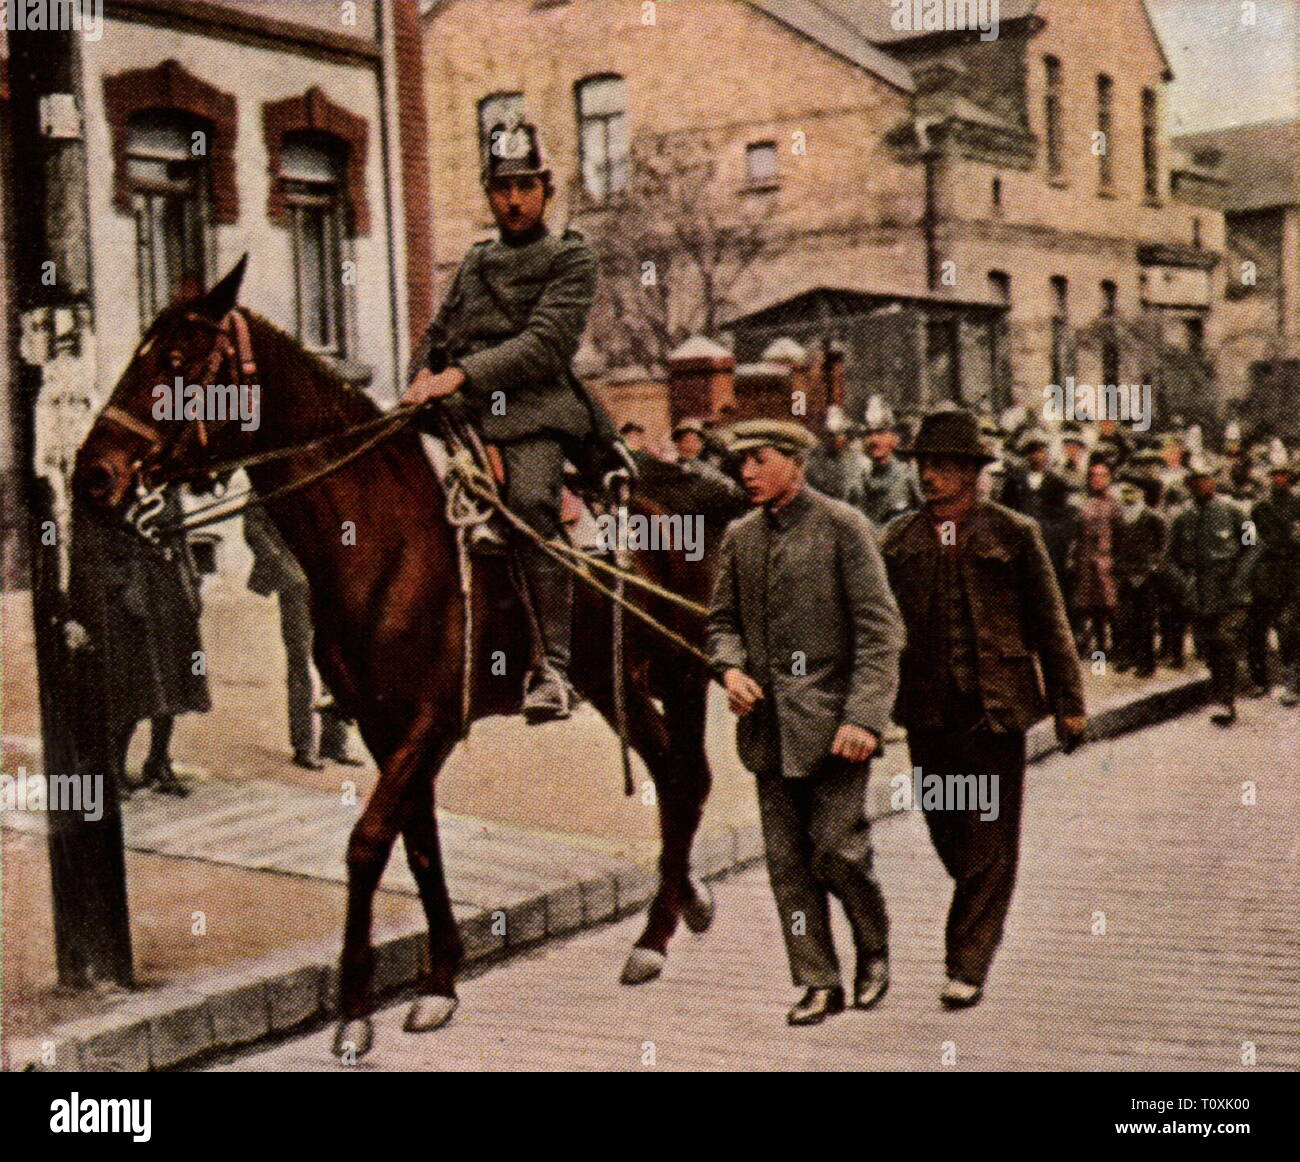 Riots in Central Germany, March 1921, mounted policeman with arrested looters, coloured photograph, cigarette card, series 'Die Nachkriegszeit', 1935, police, looter, looters, under arrest, arrest, arresting, detain, detaining, misery, hardship, Germany, German Reich, Weimar Republic, 1920s, 20th century, riot, riots, policeman, policemen, coloured, colored, post war period, post-war period, post-war years, post-war era, historic, historical, Additional-Rights-Clearance-Info-Not-Available - Stock Image